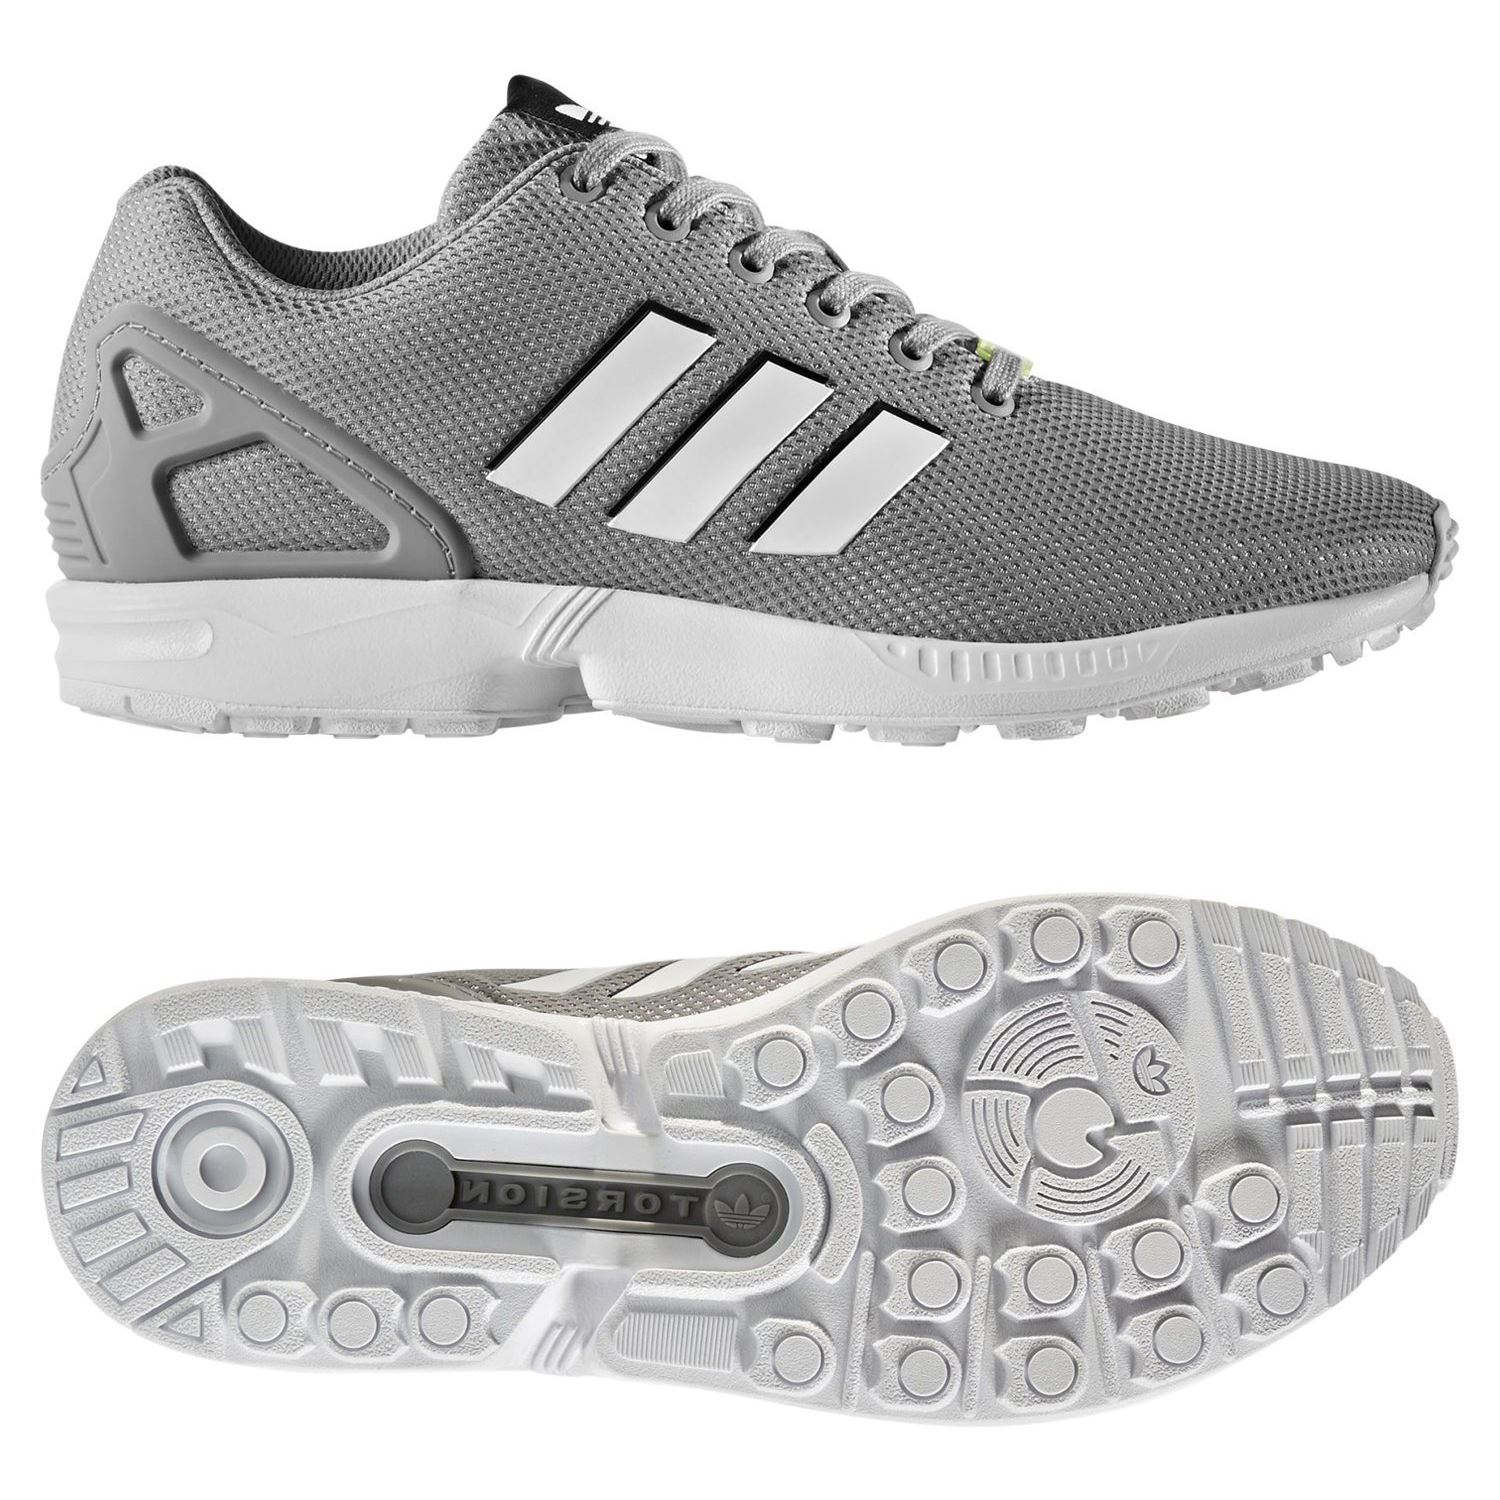 fe9c99d1d Details about adidas ORIGINALS MEN S ZX FLUX TRAINERS GREY SNEAKERS SHOES  RETRO RUNNING